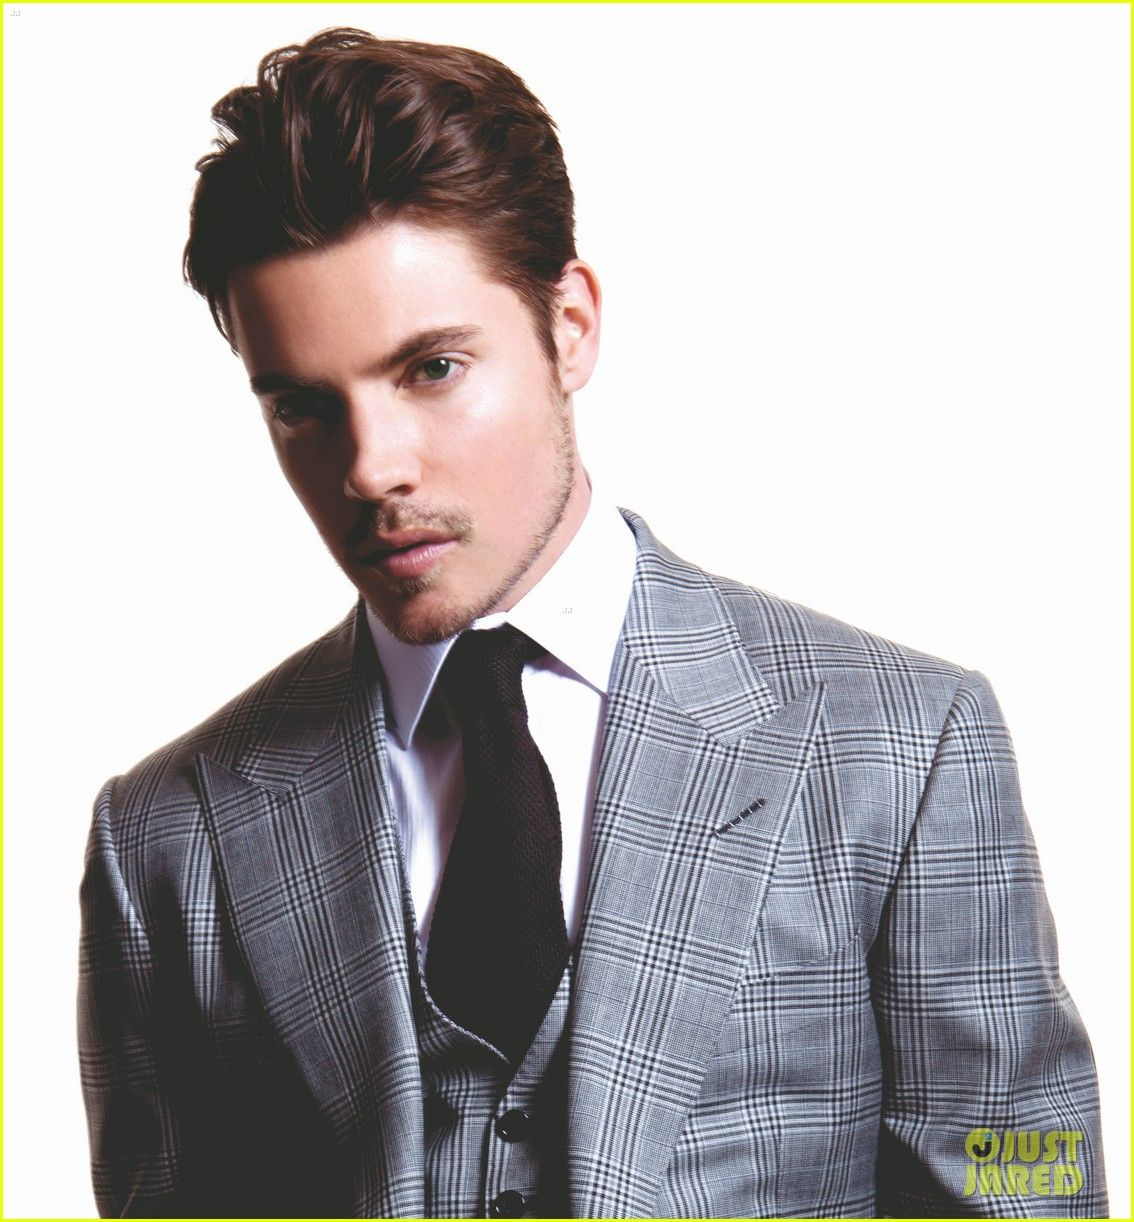 josh henderson agejosh henderson gif, josh henderson songs, josh henderson instagram, josh henderson dallas, josh henderson kaley cuoco, josh henderson age, josh henderson net worth, josh henderson can you tell me it's okay lyrics, josh henderson tell me it's ok lyrics, josh henderson seattle, josh henderson tumblr, josh henderson 2016, josh henderson tell me what to do lyrics, josh henderson lyrics, josh henderson source